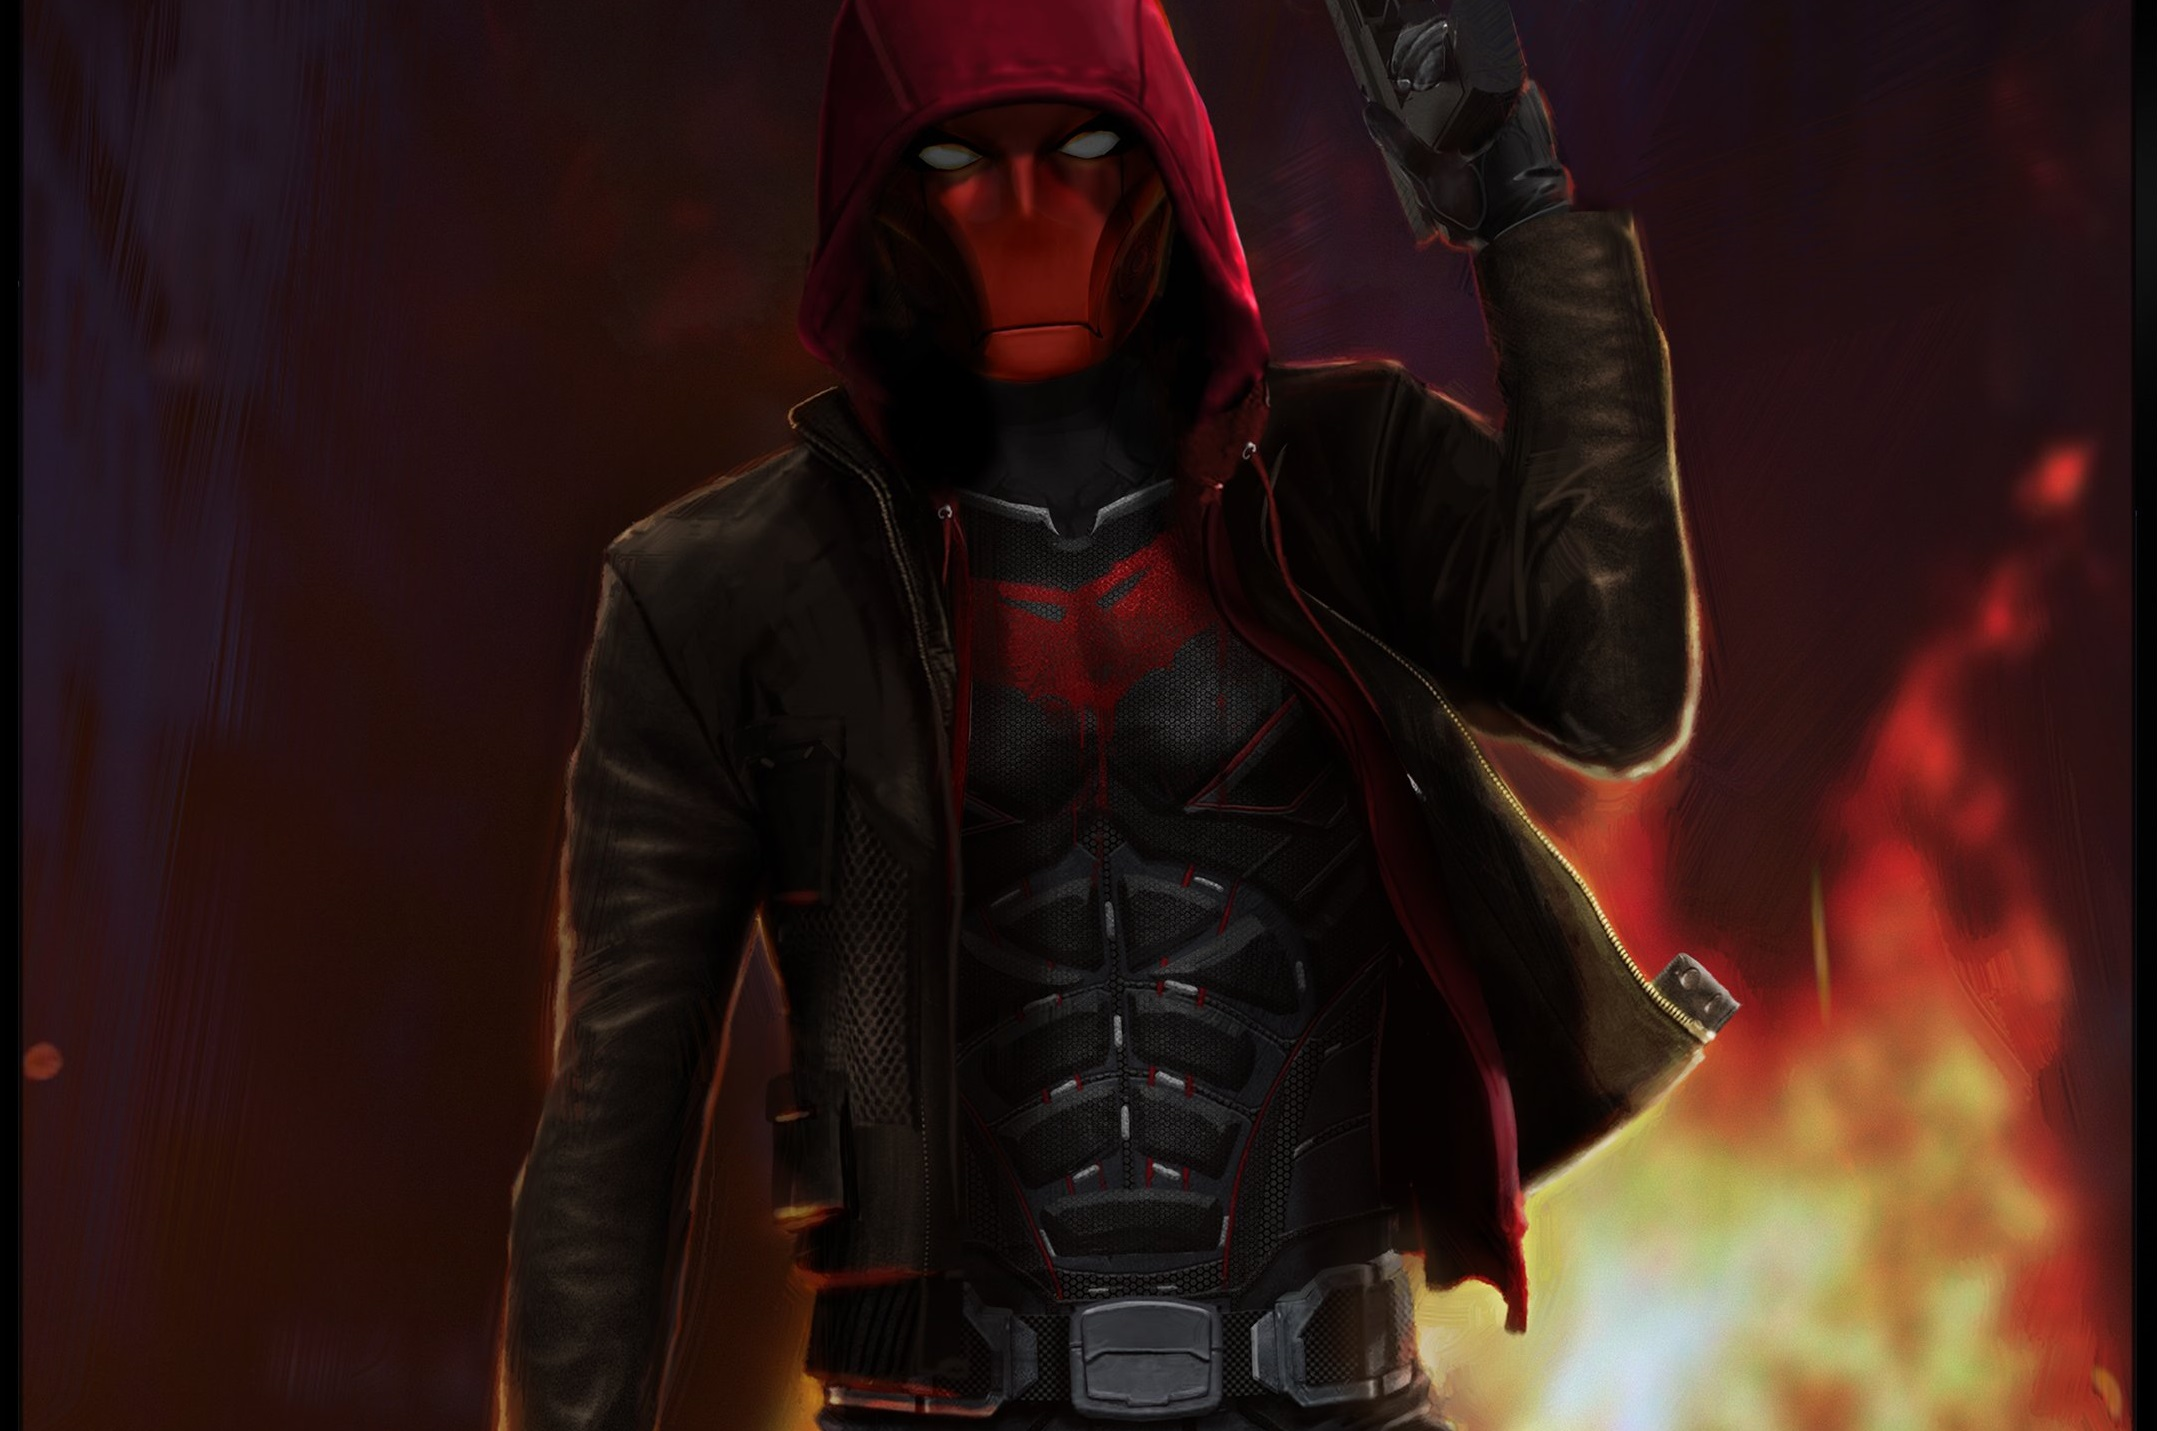 jason todd titans season 3 red hood